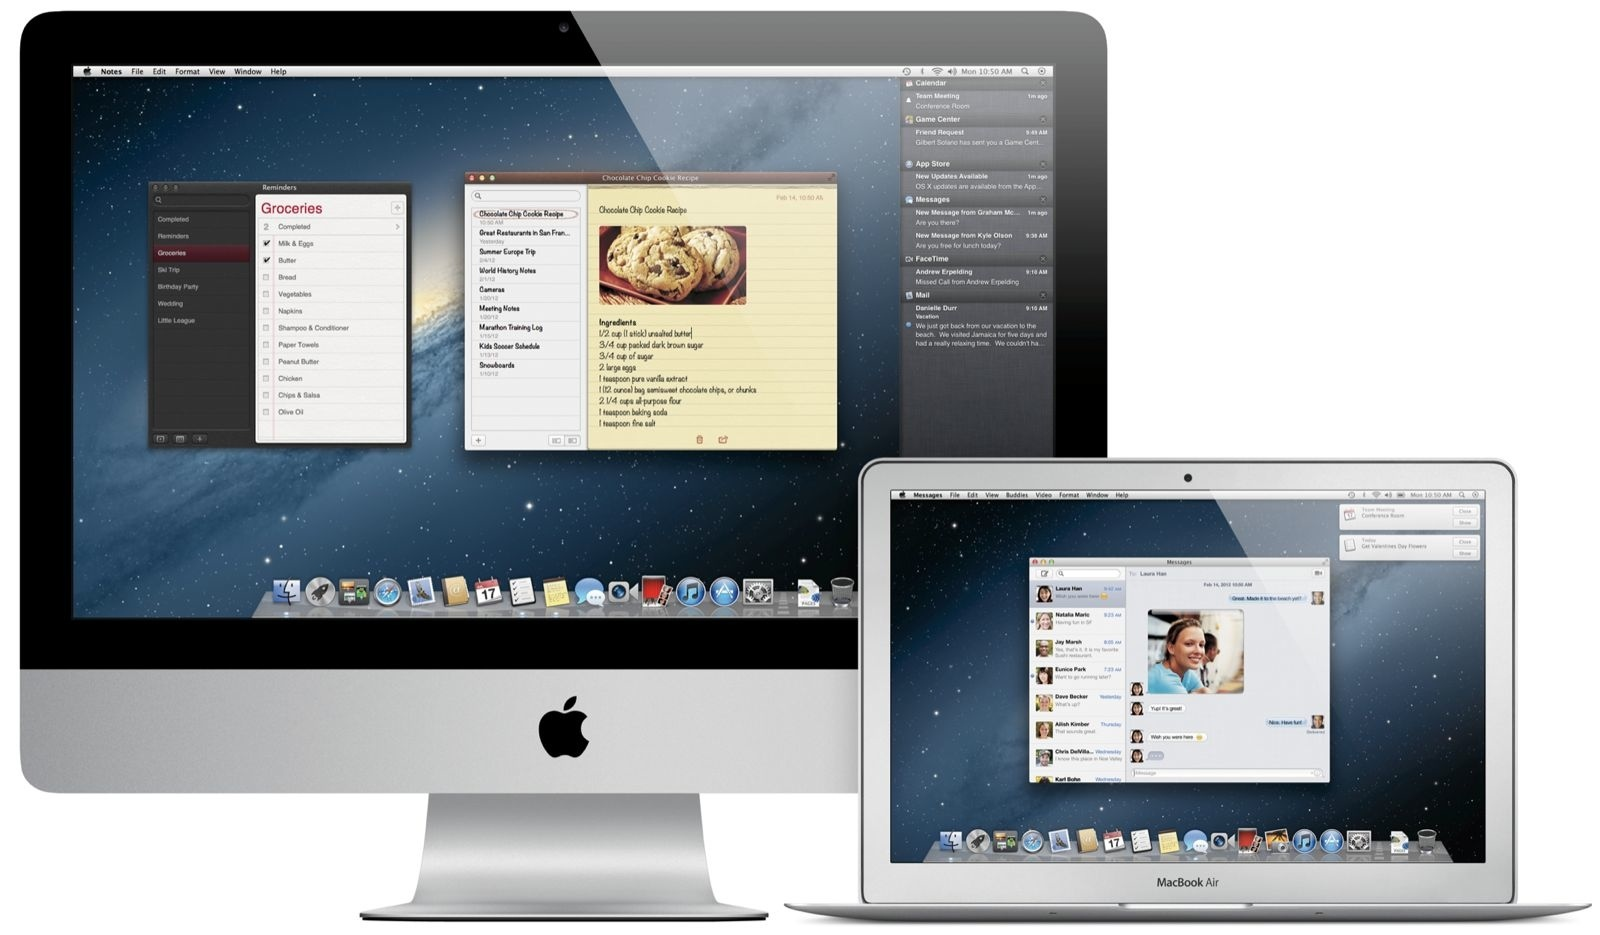 os-x-mountain-lion (Foto: os-x-mountain-lion)